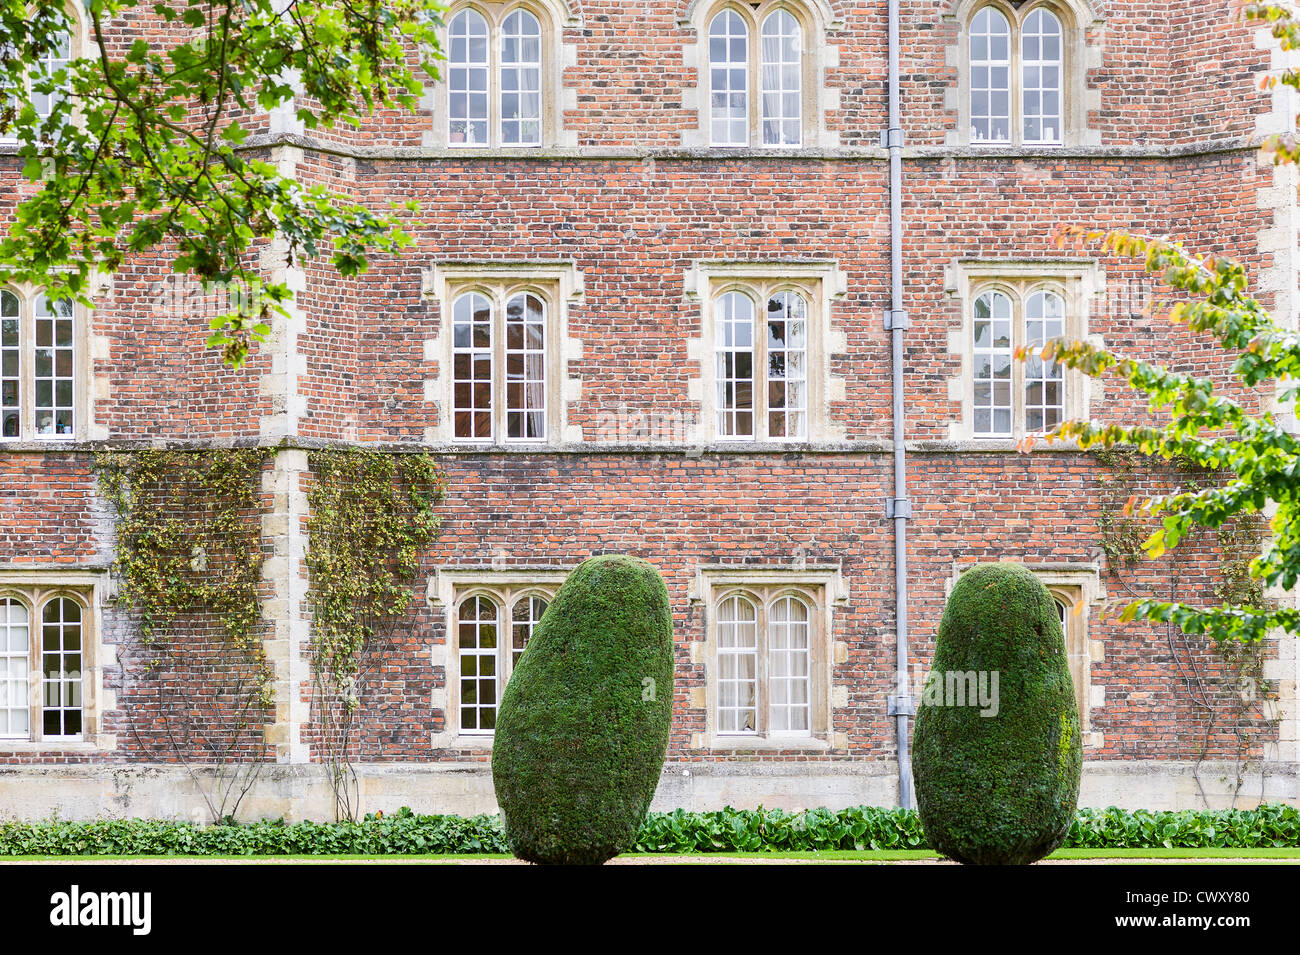 Jesus college, university of Cambridge, England. - Stock Image